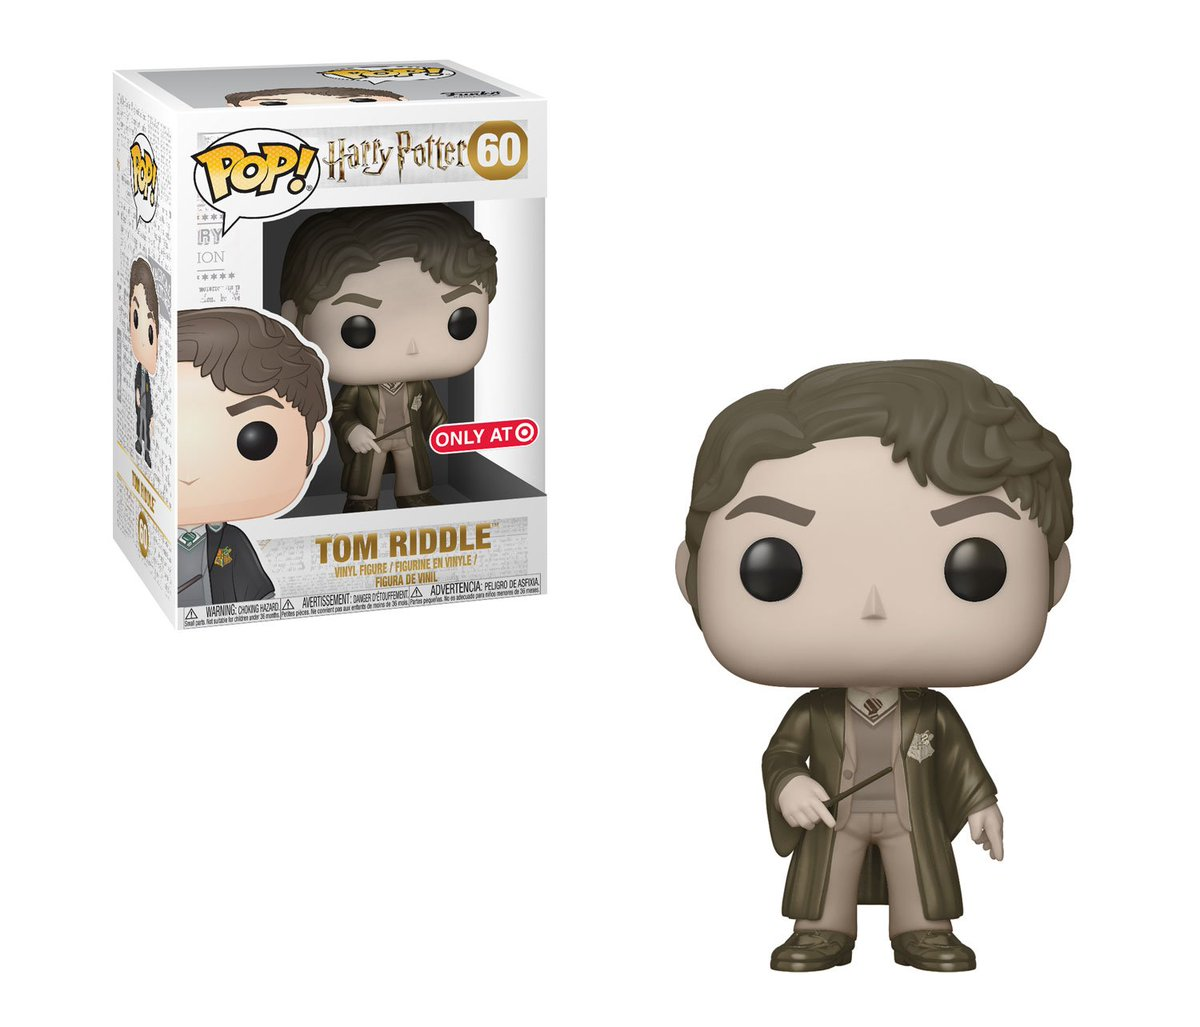 RT @OriginalFunko: RT & follow @OriginalFunko for a chance to WIN a @Target exclusive Tom Riddle Pop! https://t.co/VLXM7S9OGn